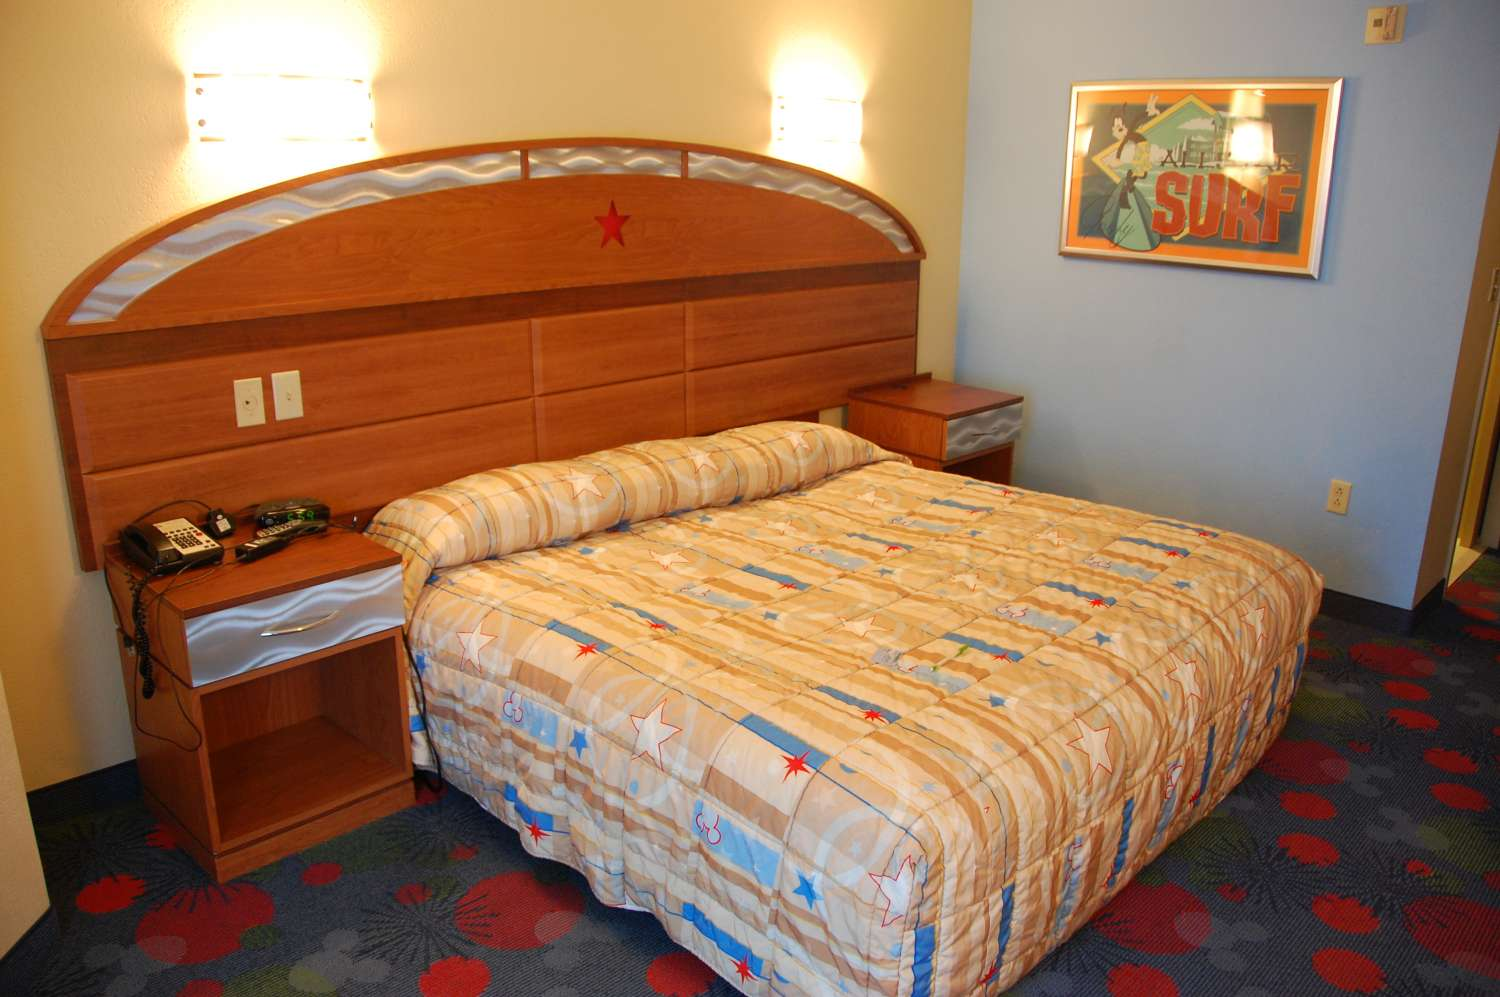 301-All-Star-Sports-Room-King-Bed.JPG